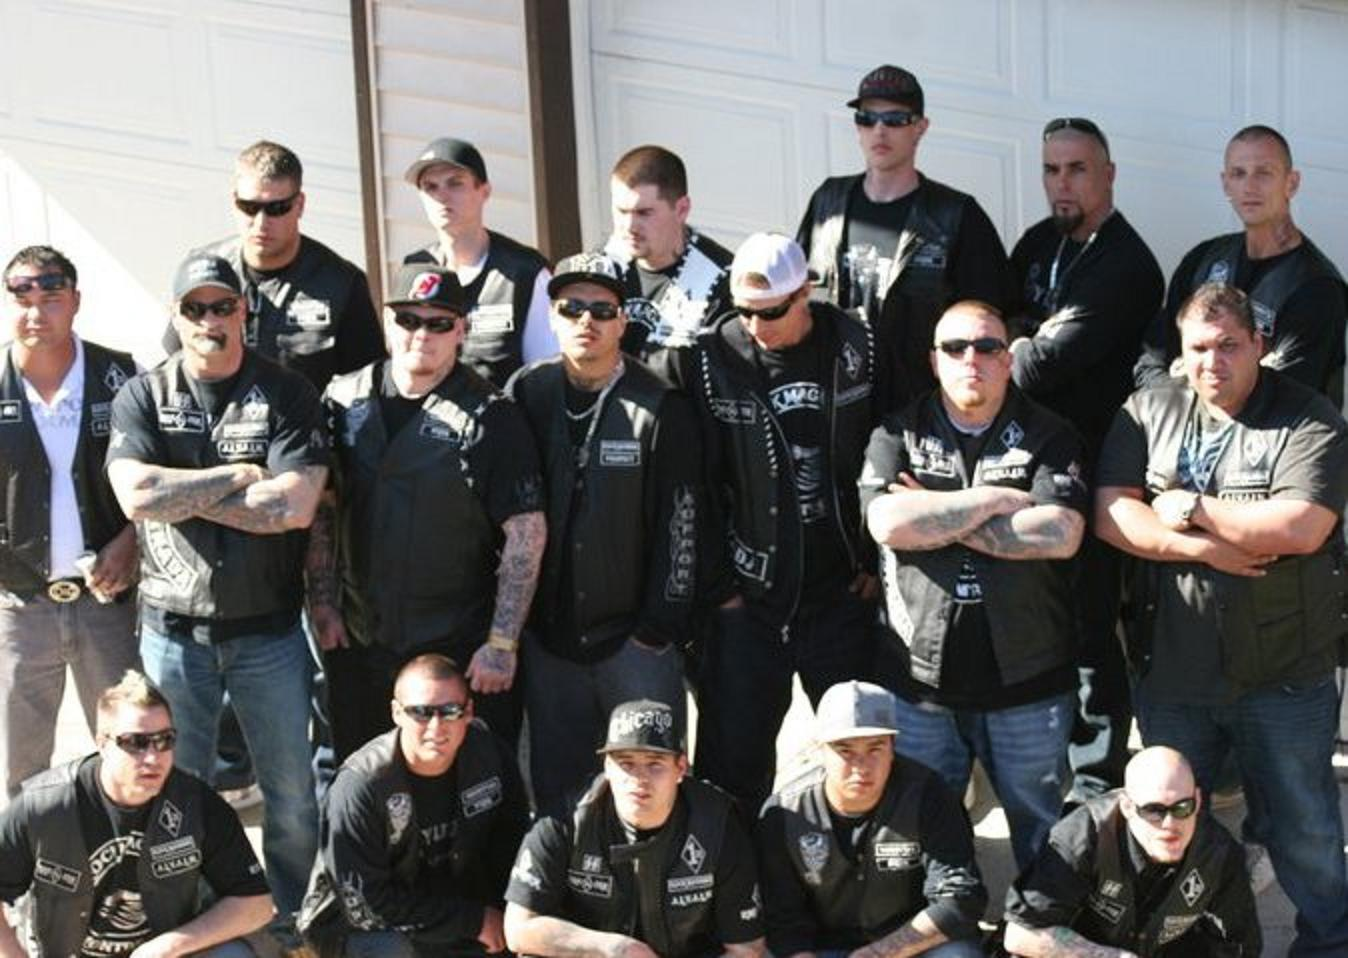 Gangsters Out Blog: Rock Machine member sentenced to 8 years